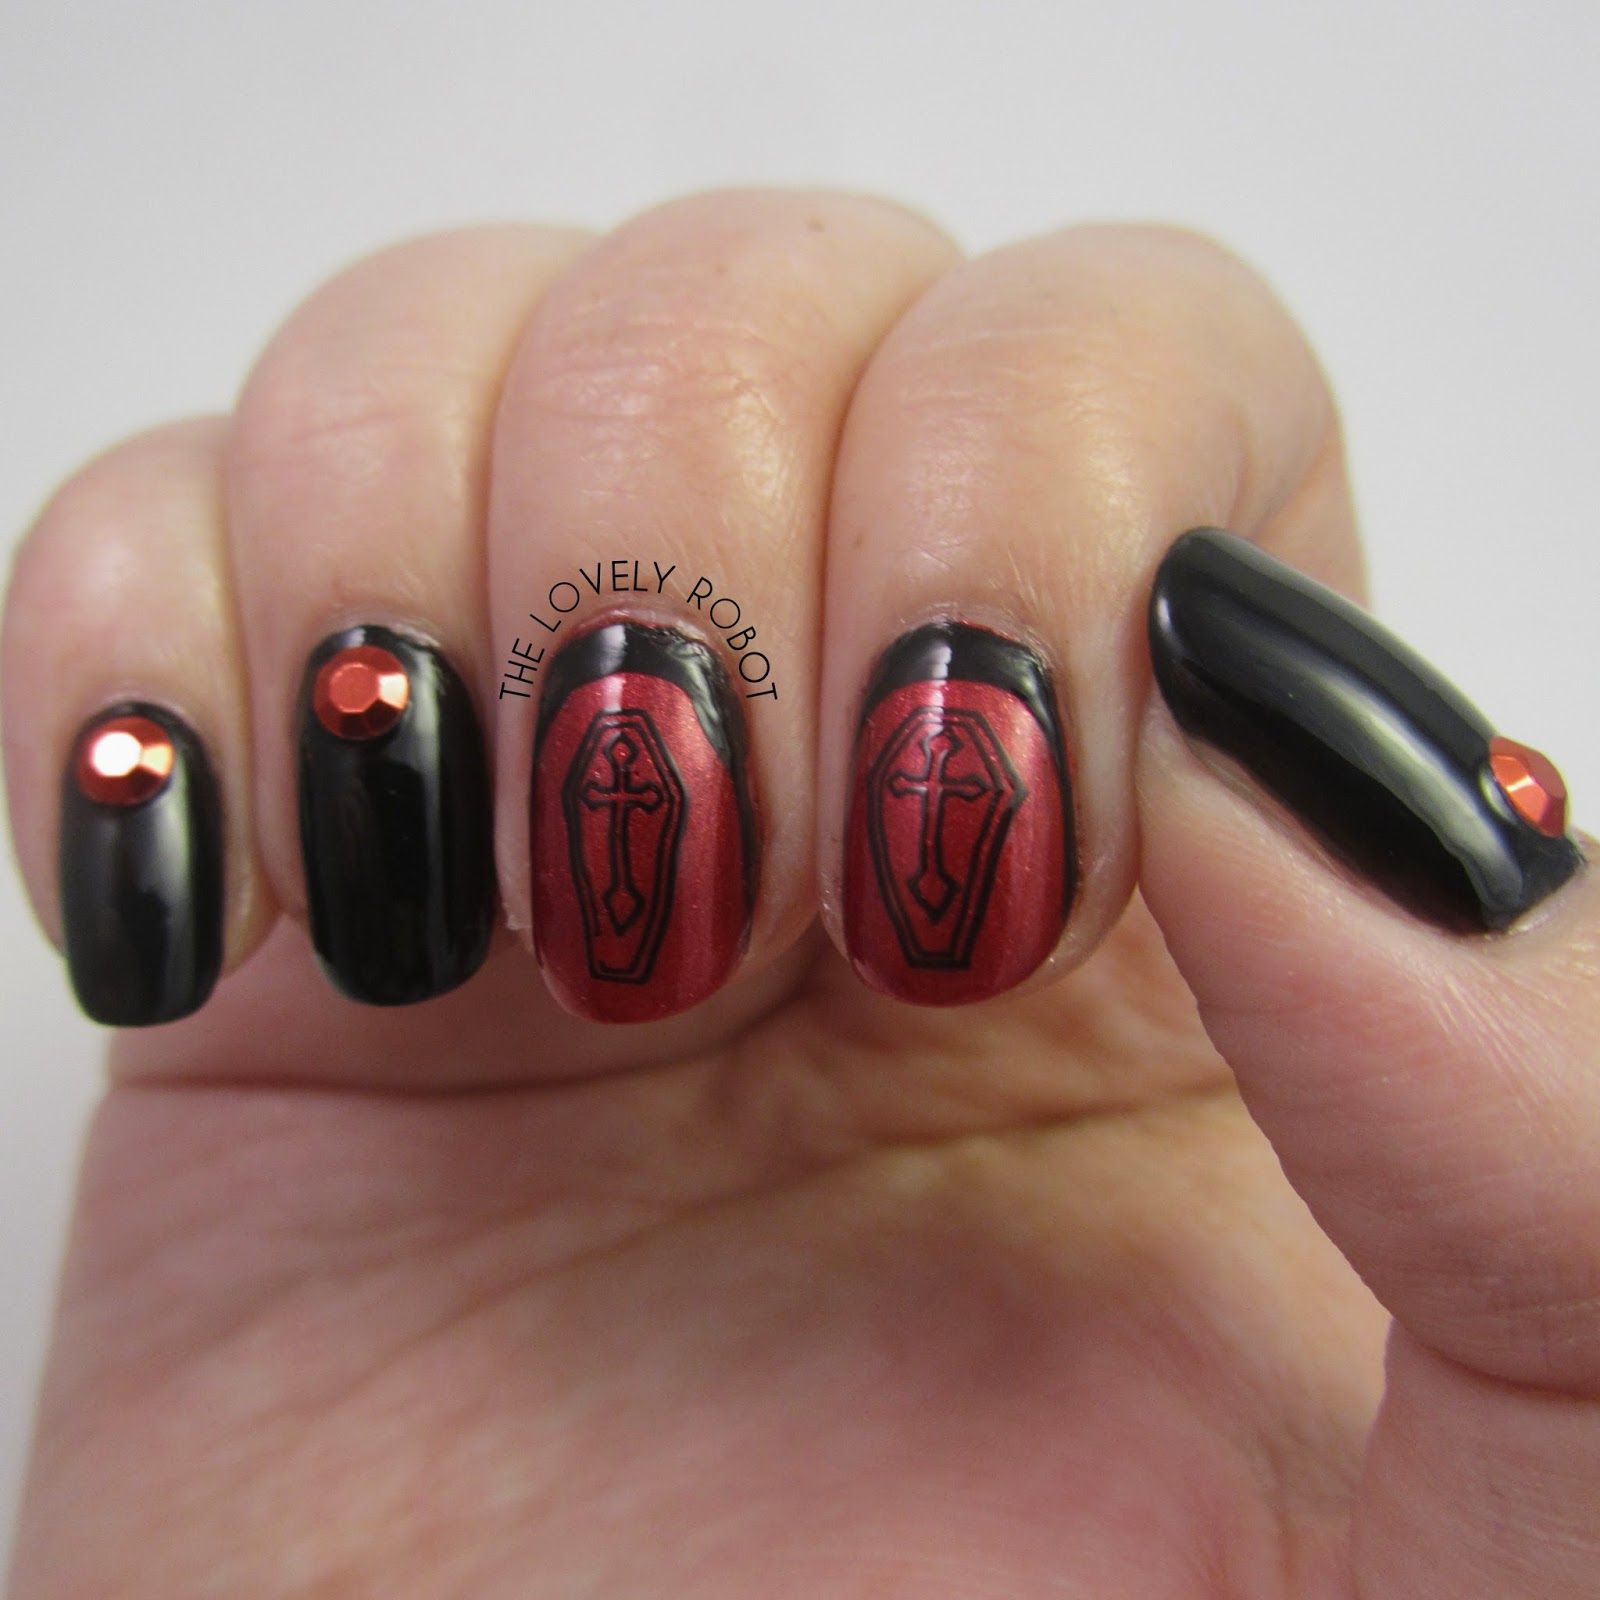 Death Nails For Halloween And Bundlemonsters 30 Days Of Scream Nail